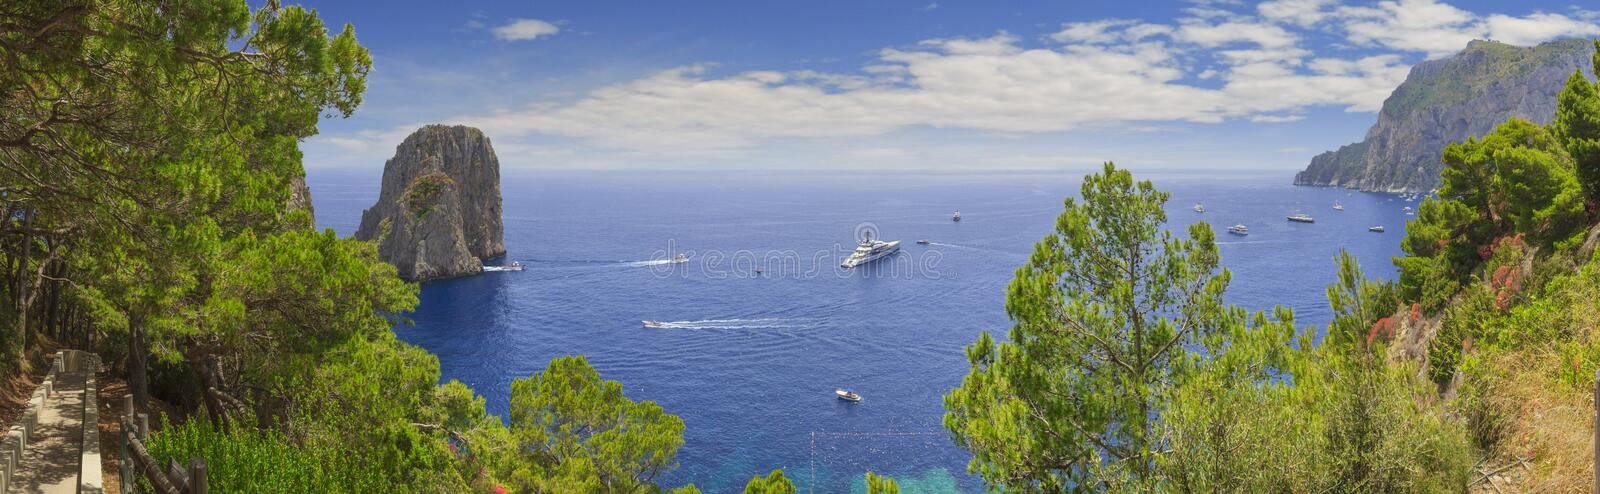 Panoramic view of famous Faraglioni Rocks and Marina Piccola in Capri island, Italy. Typical panoramic pedestrian path of Capri. Marina Piccola. Boats and stock photo